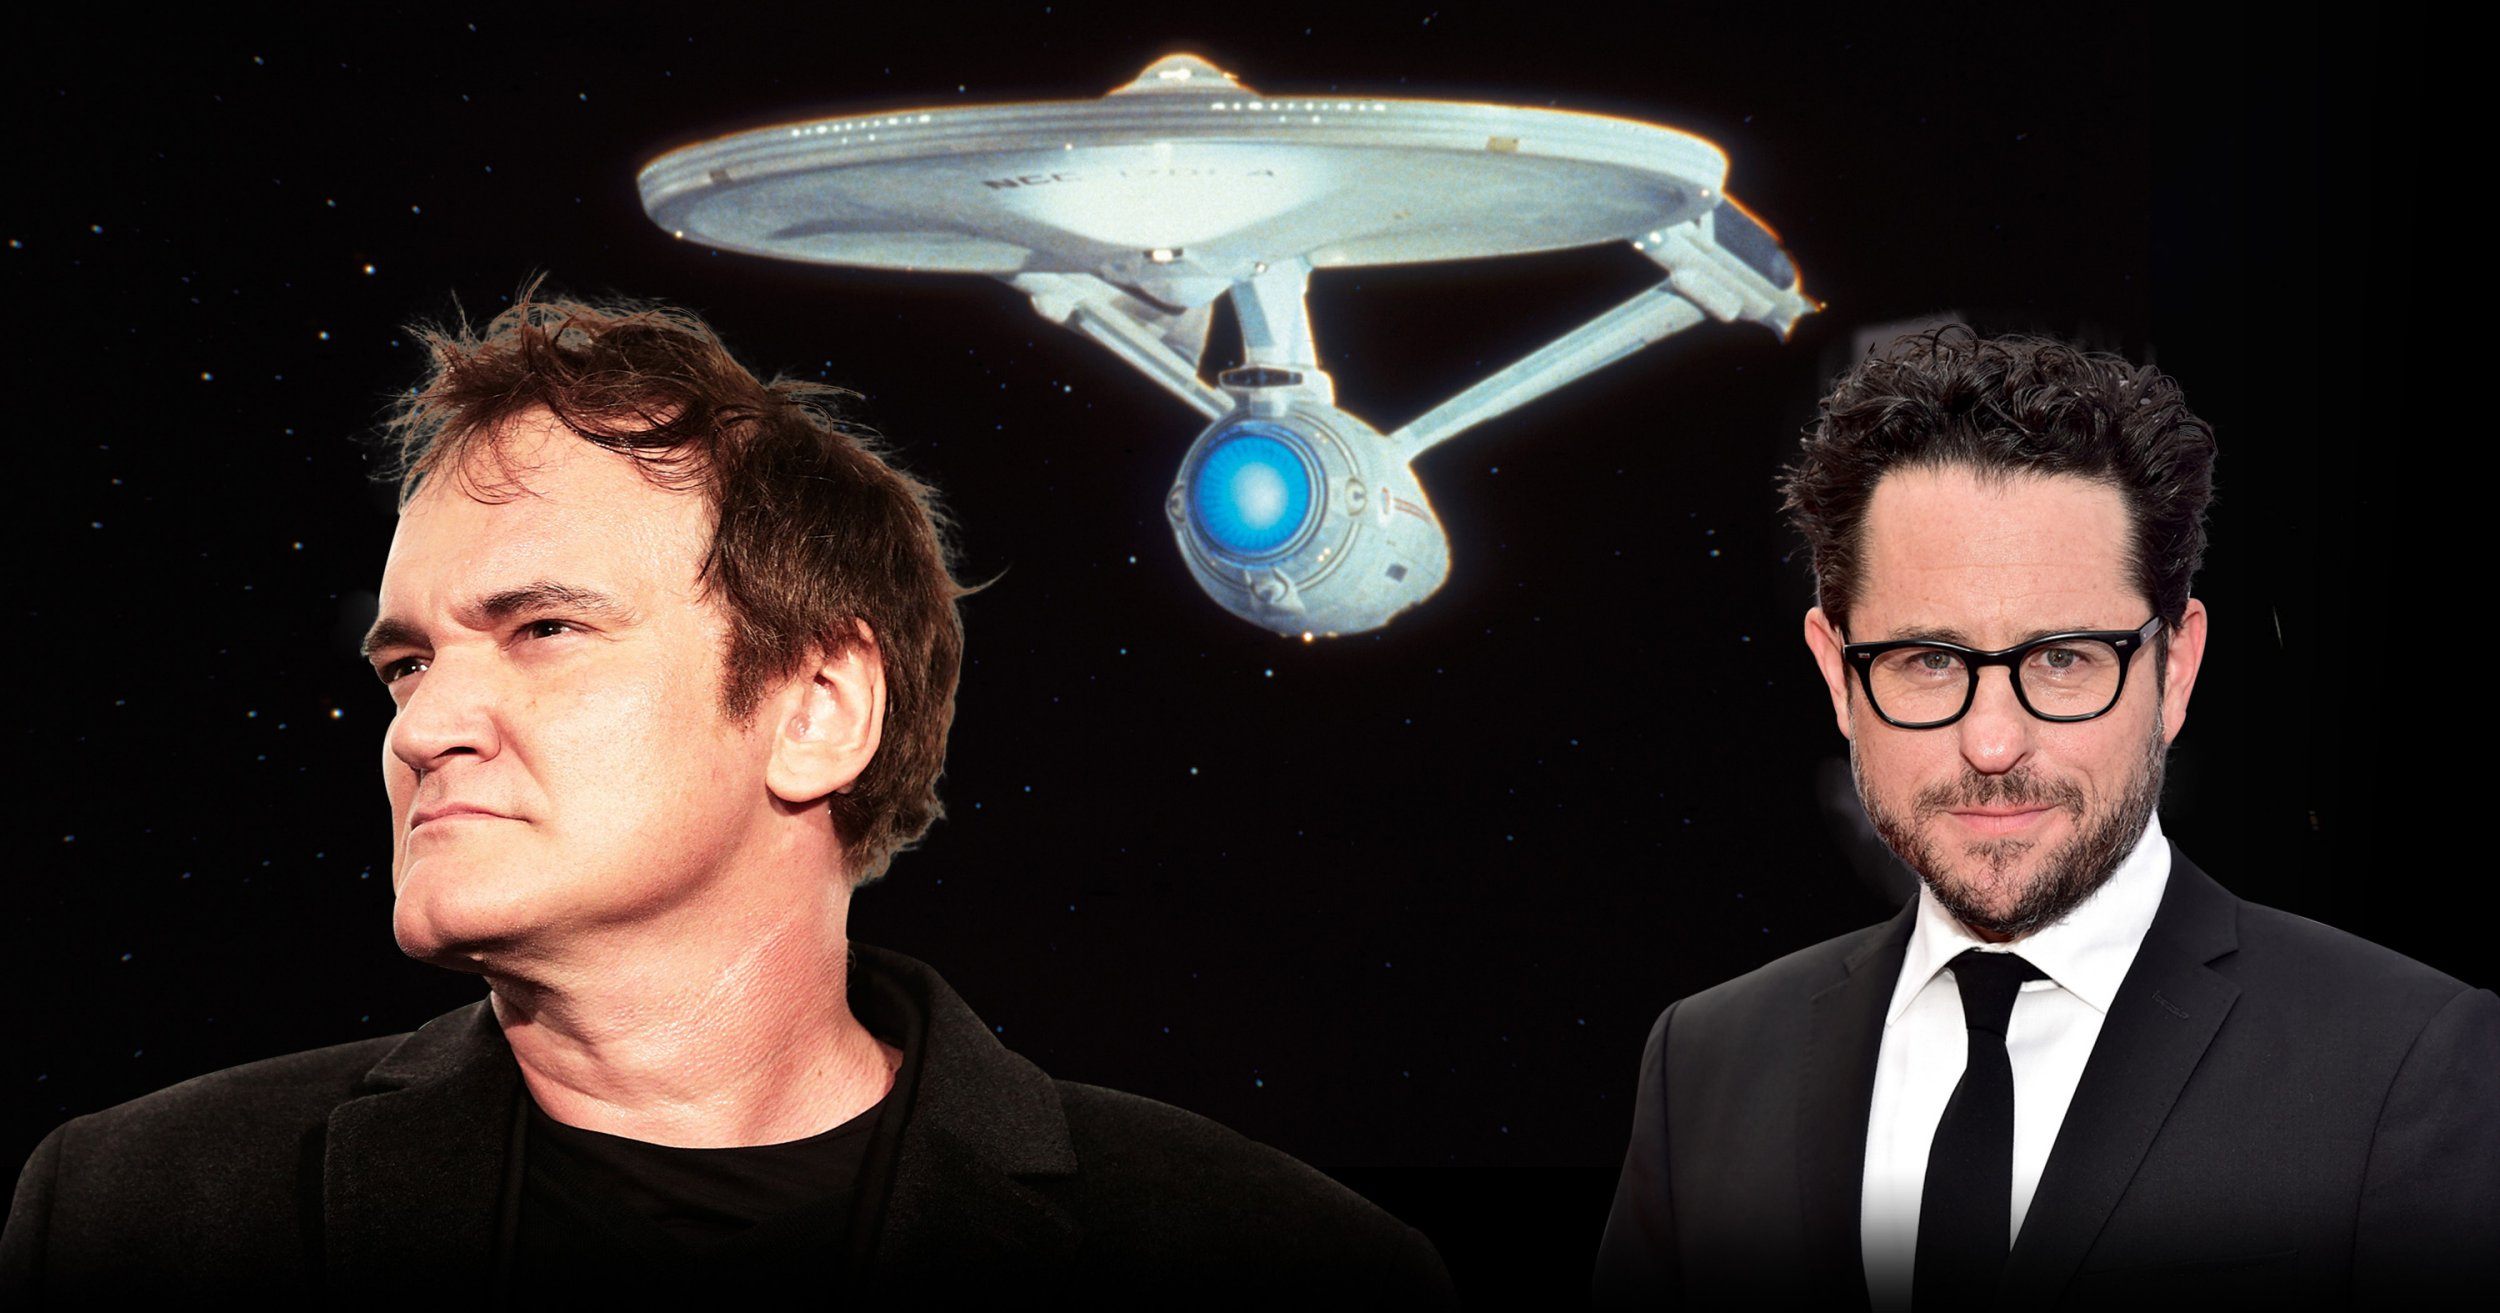 Quentin Tarantino 'to team up with JJ Abrams for new Star Trek film'